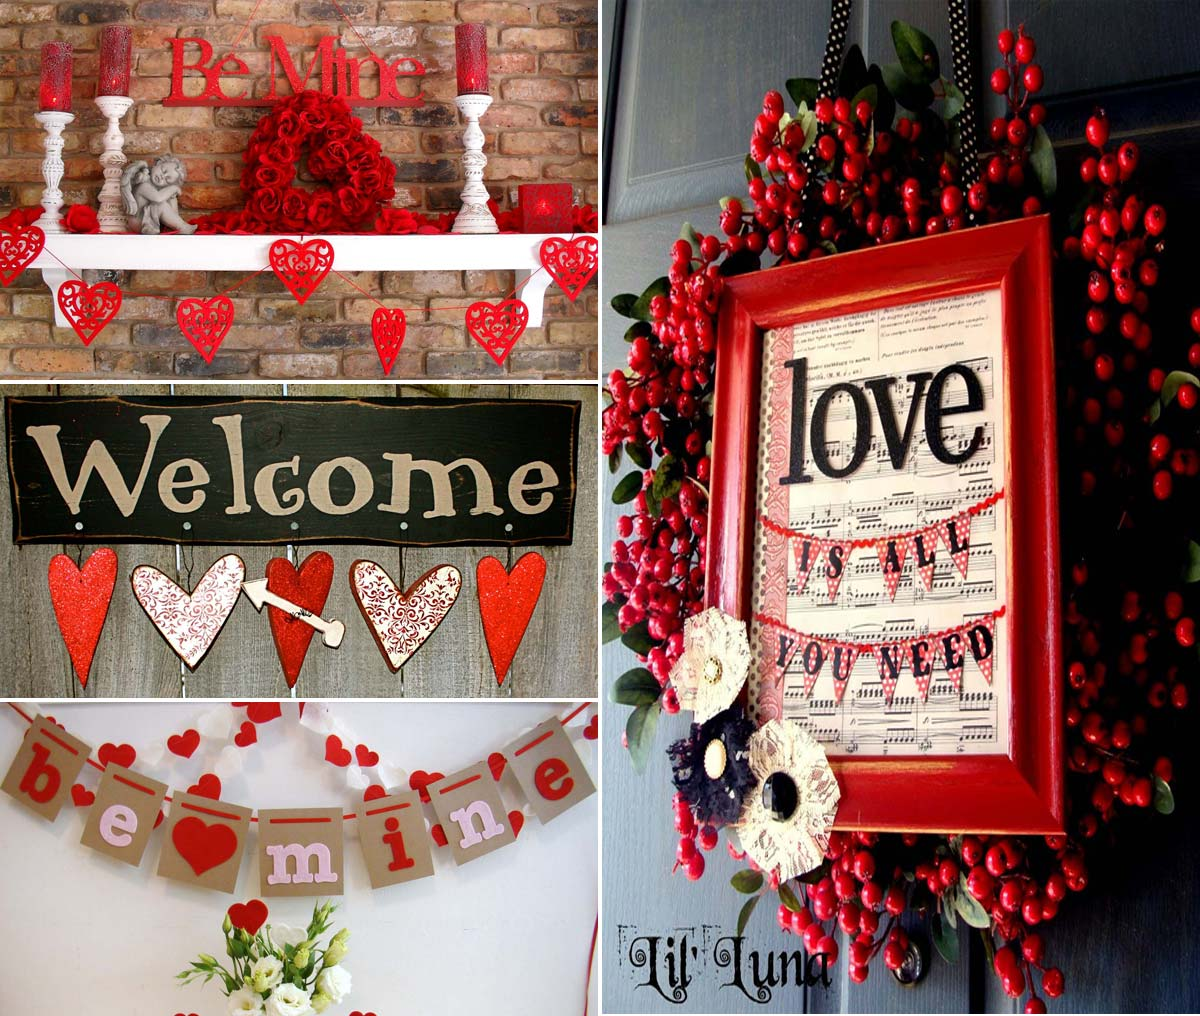 valentine's day decorations ideas 2016 to decorate bedroom ...